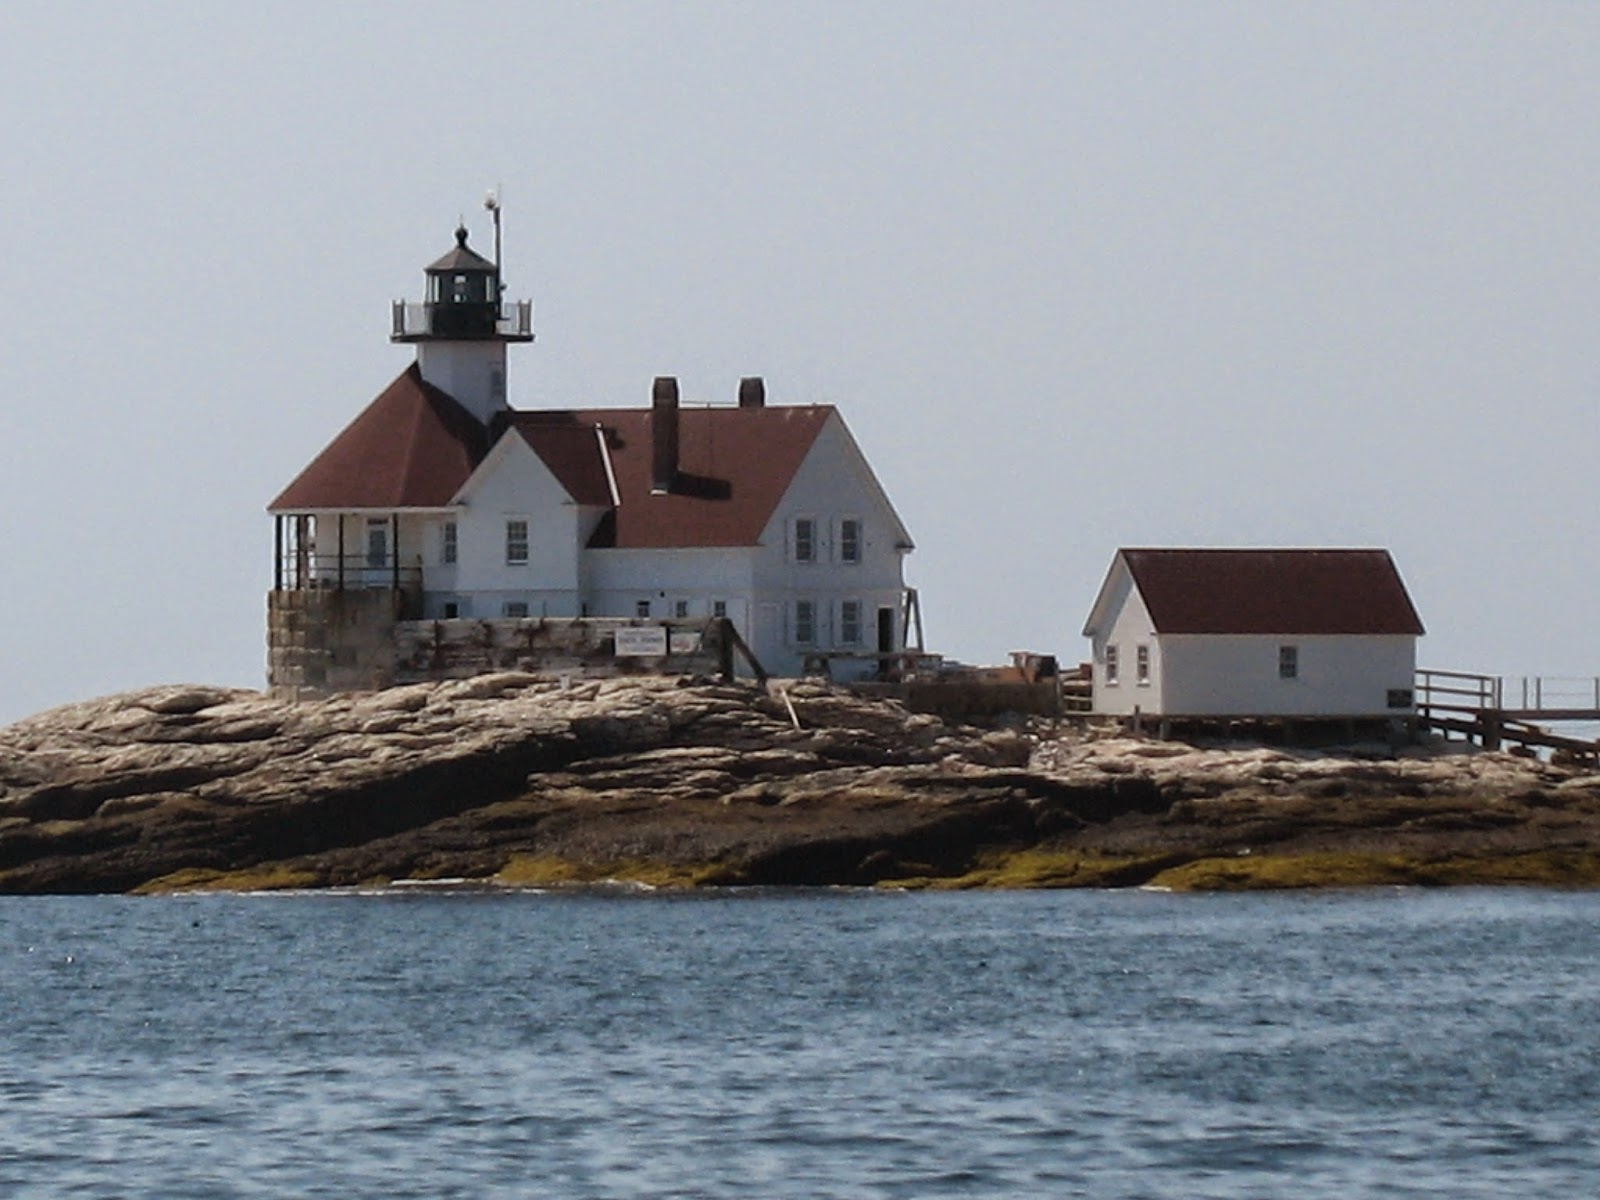 http://intransit.blogs.nytimes.com/2014/04/24/a-maine-lighthouse-welcomes-guests/?_php=true&_type=blogs&_r=0